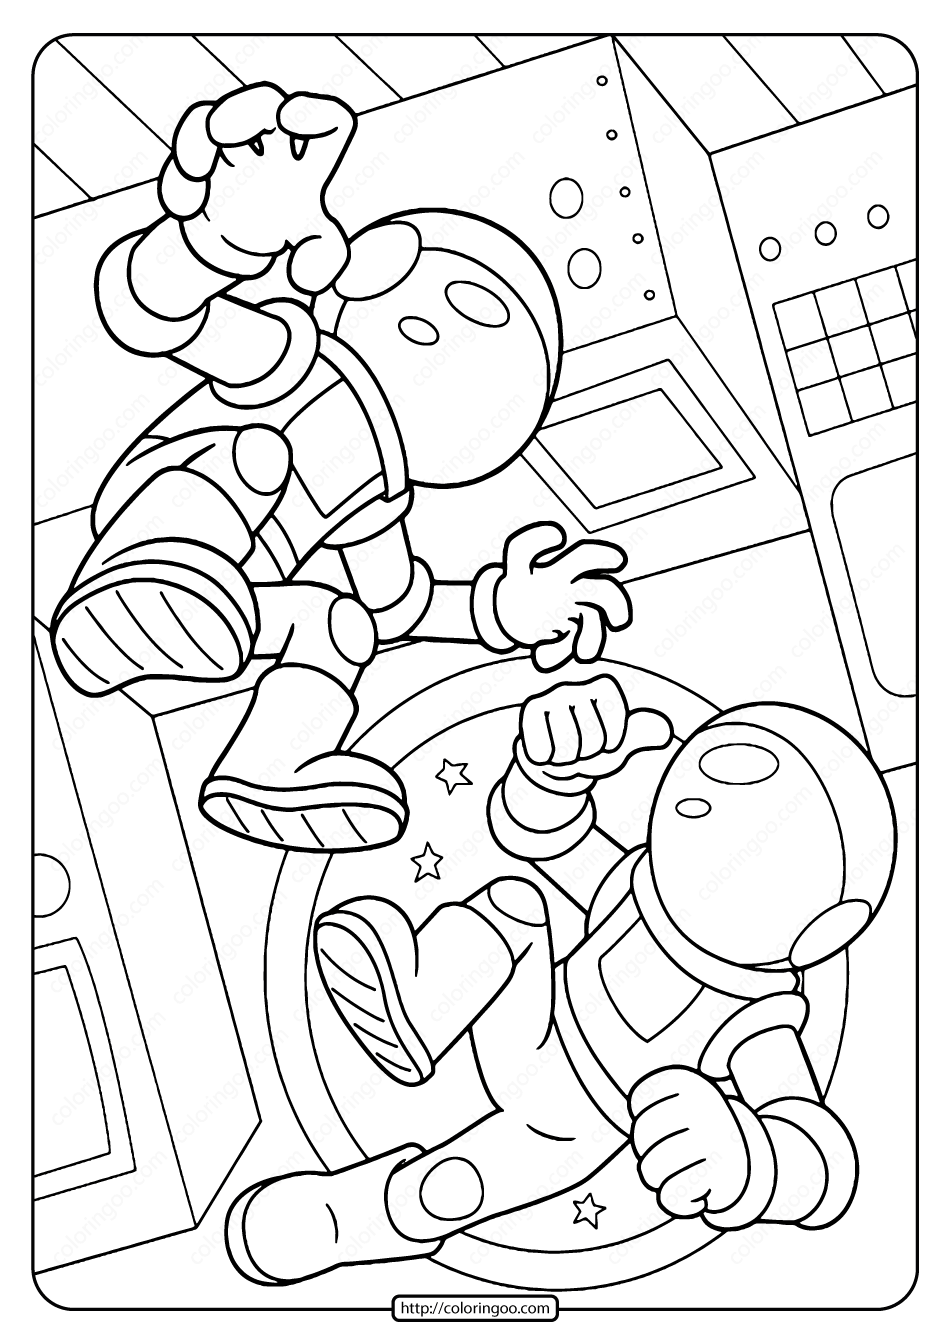 space printable coloring pages astronaut outer space coloring page coloring home coloring printable pages space